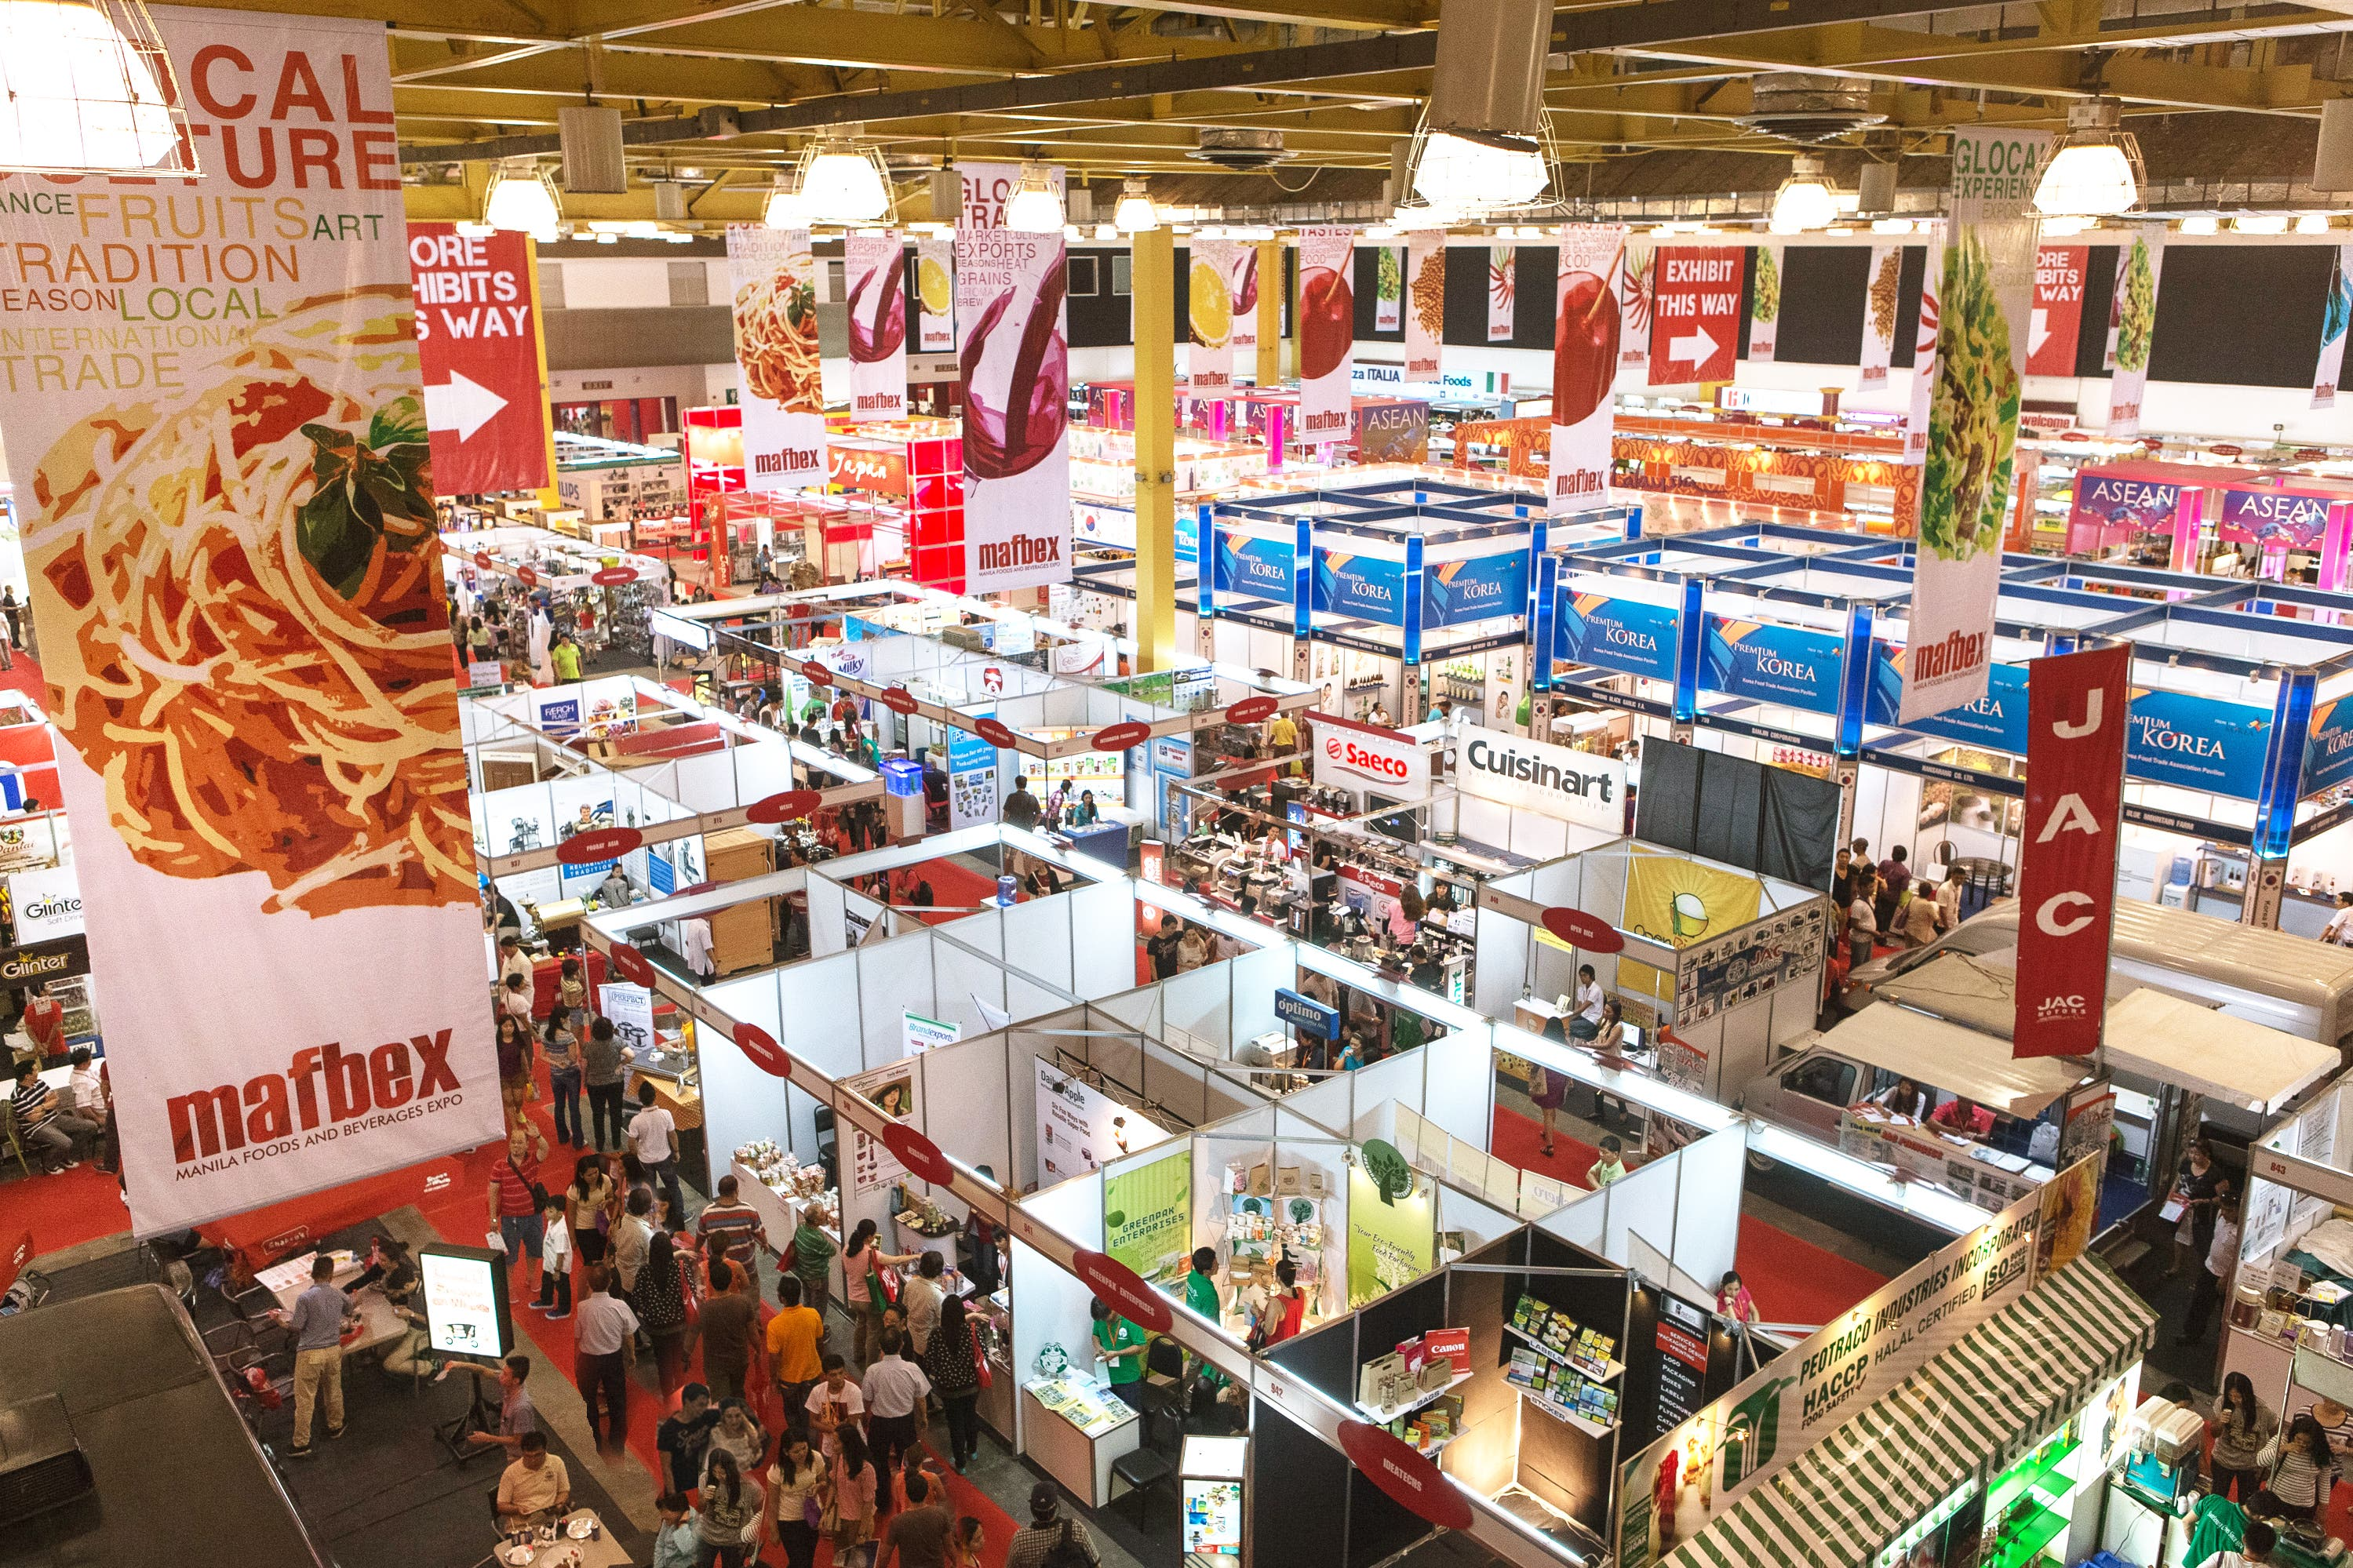 MAFBEX once again brought together the food and beverage industry's best under one roof.